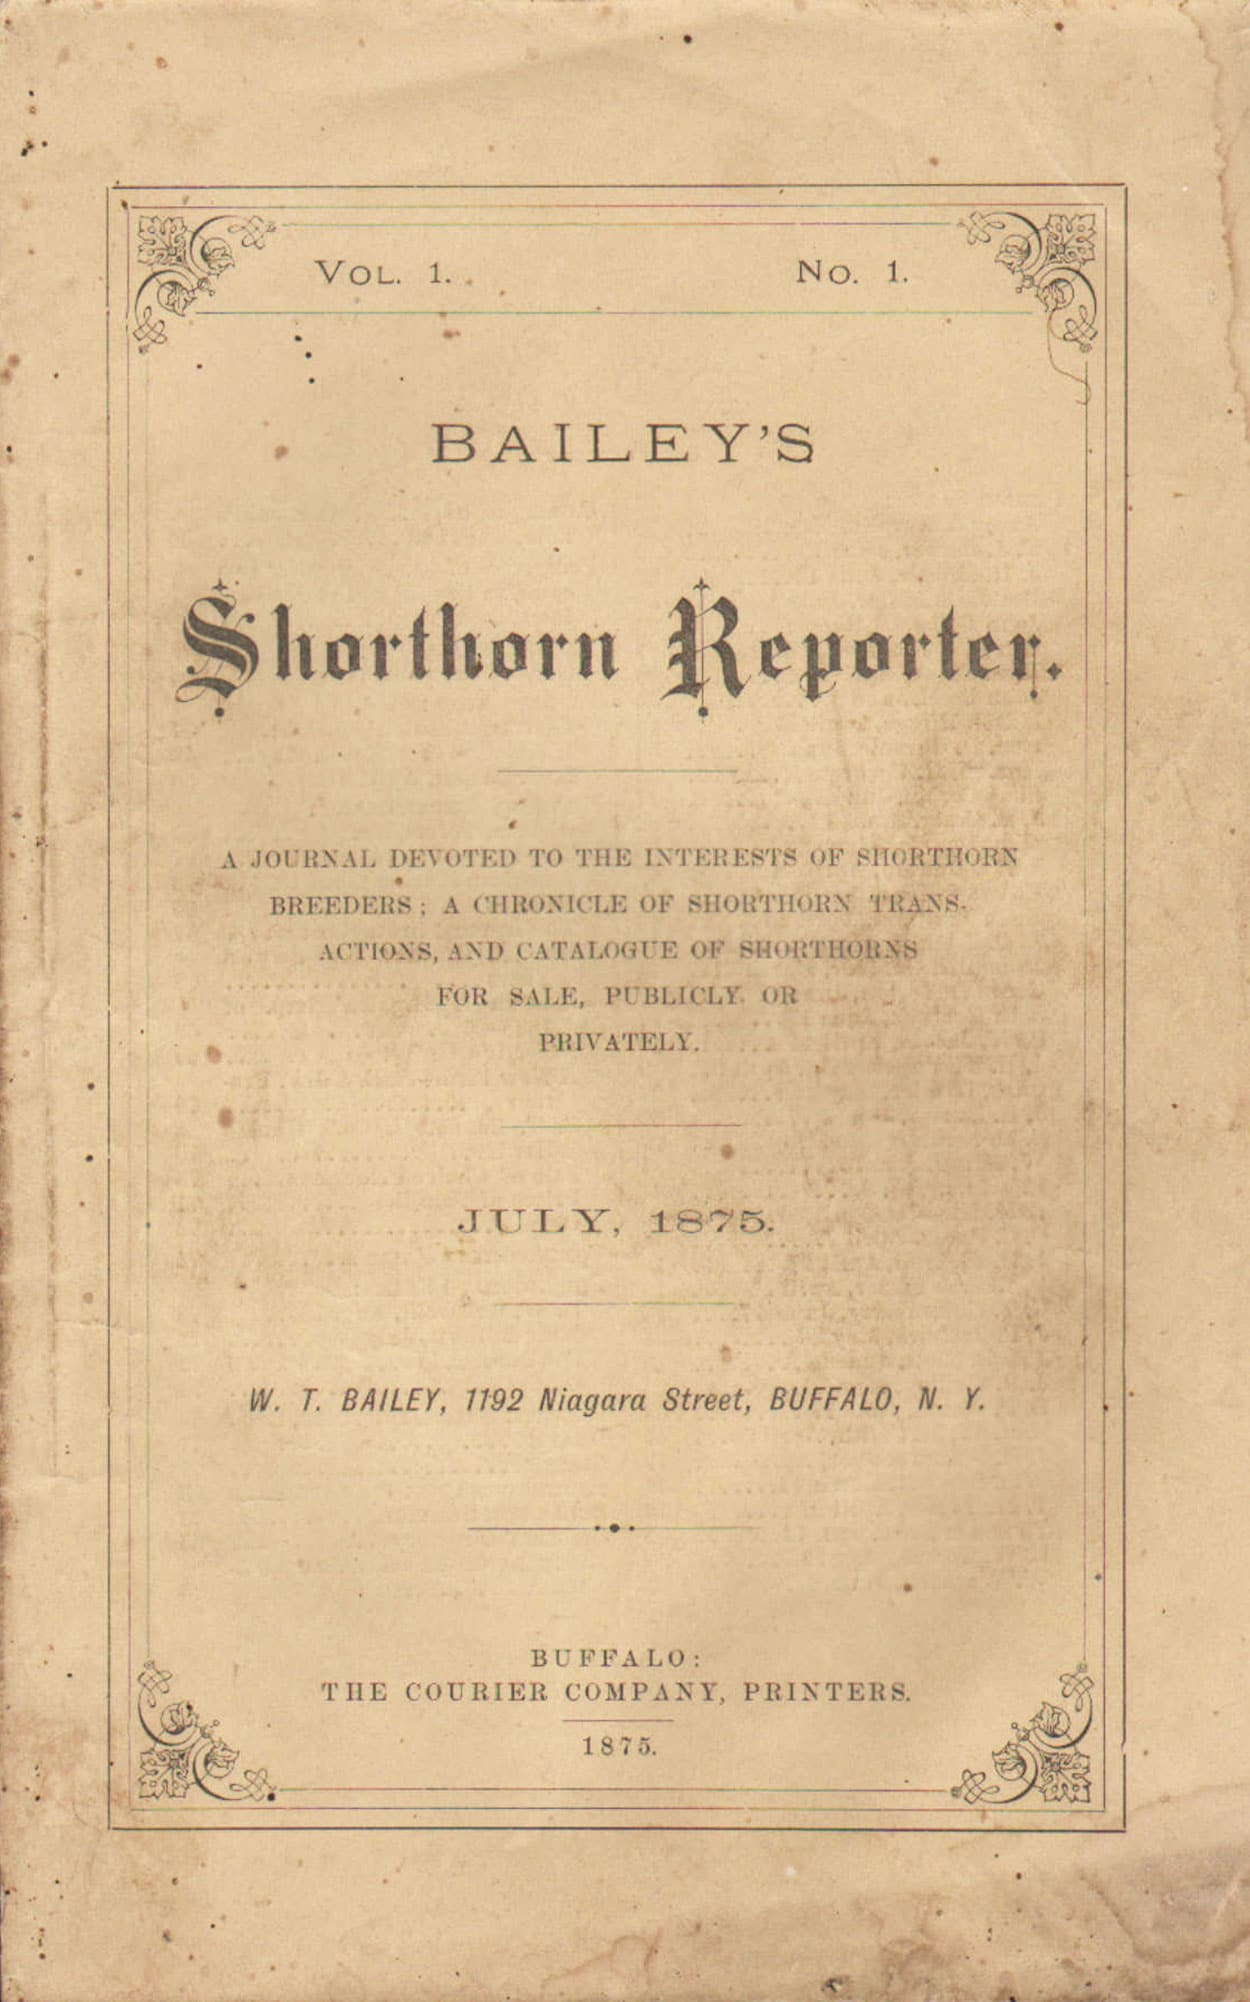 Bailey's Shorthorn Reporter